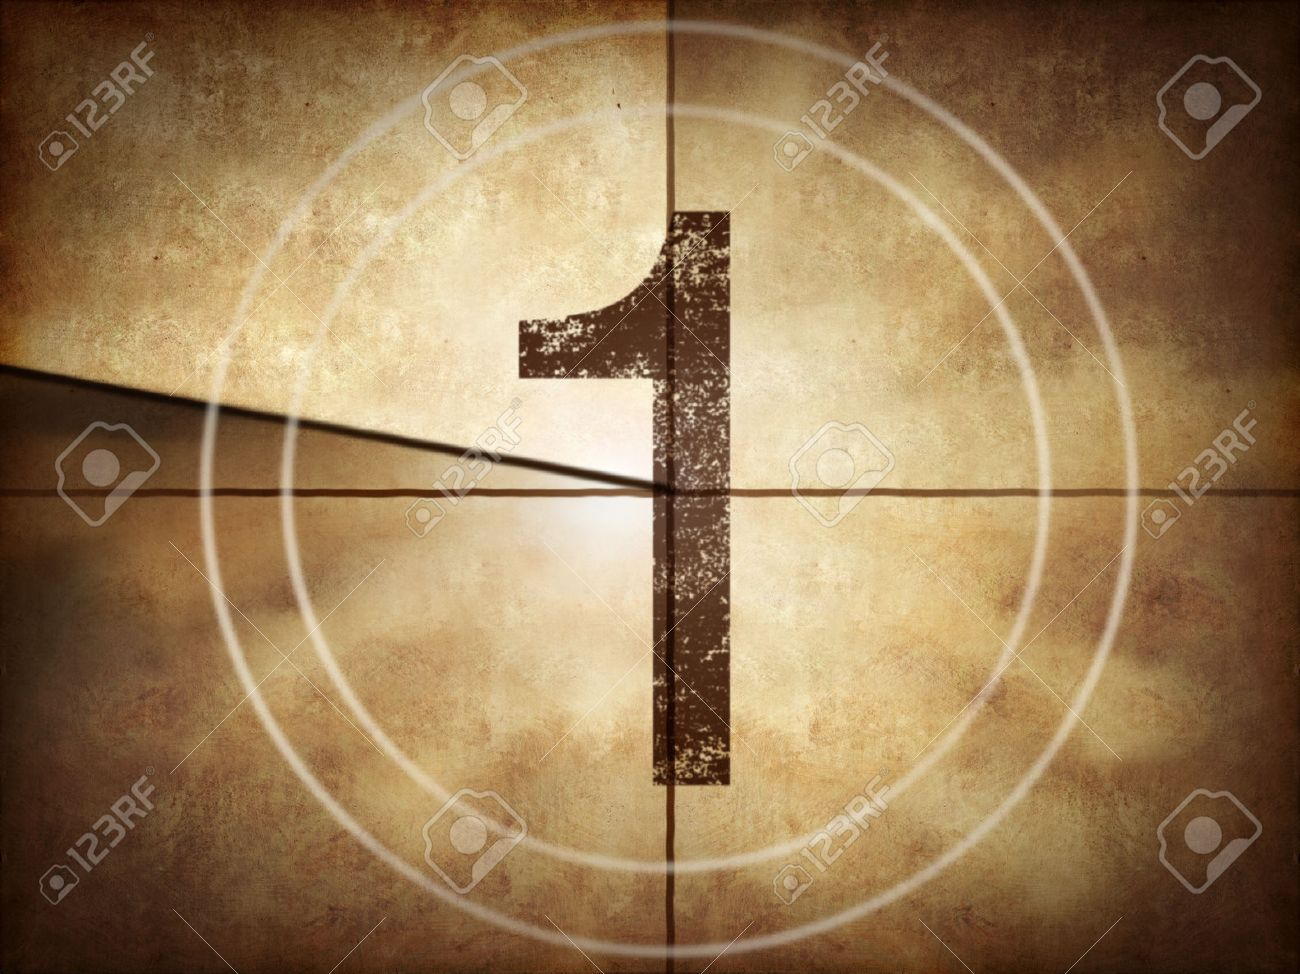 Old movie countdown number 1 Stock Photo - 34847165